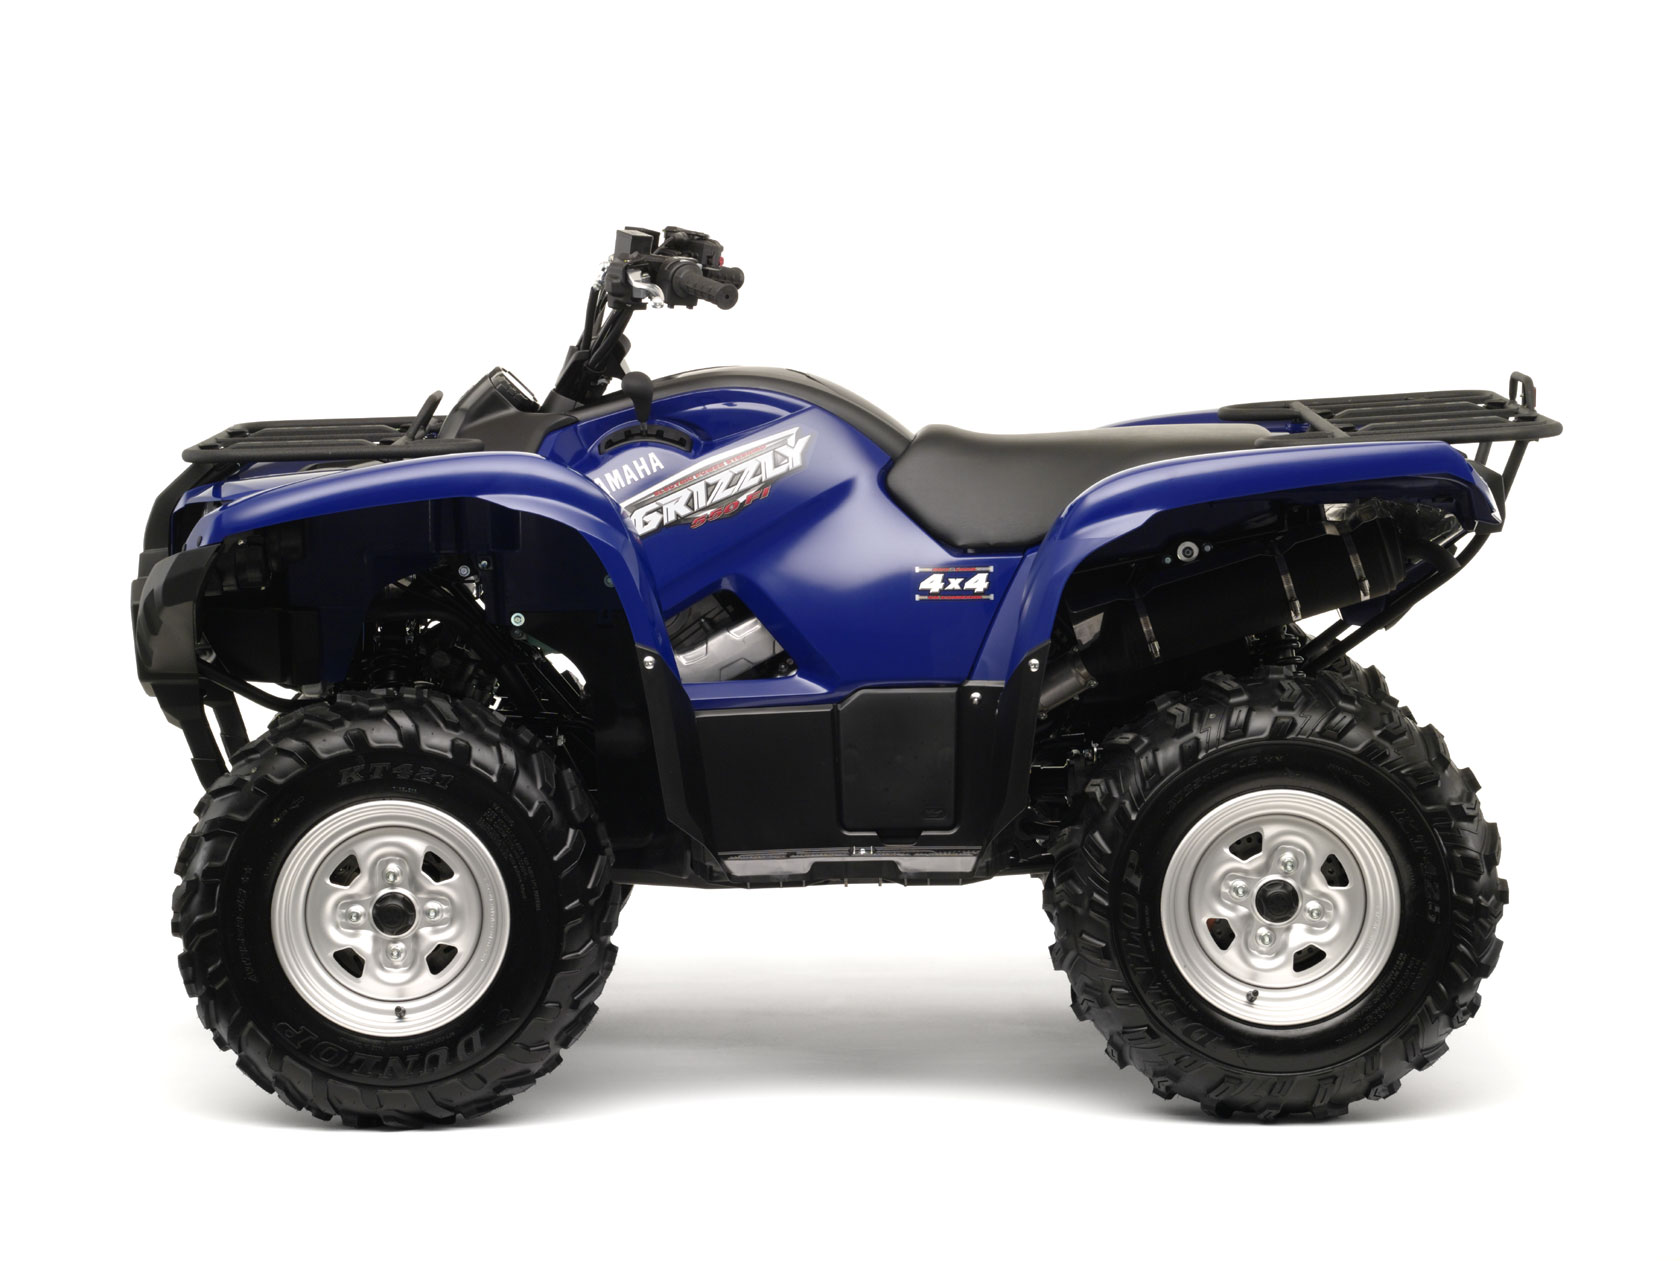 YAMAHA Grizzly 550 FI EPS specs - 2008, 2009 - autoevolution